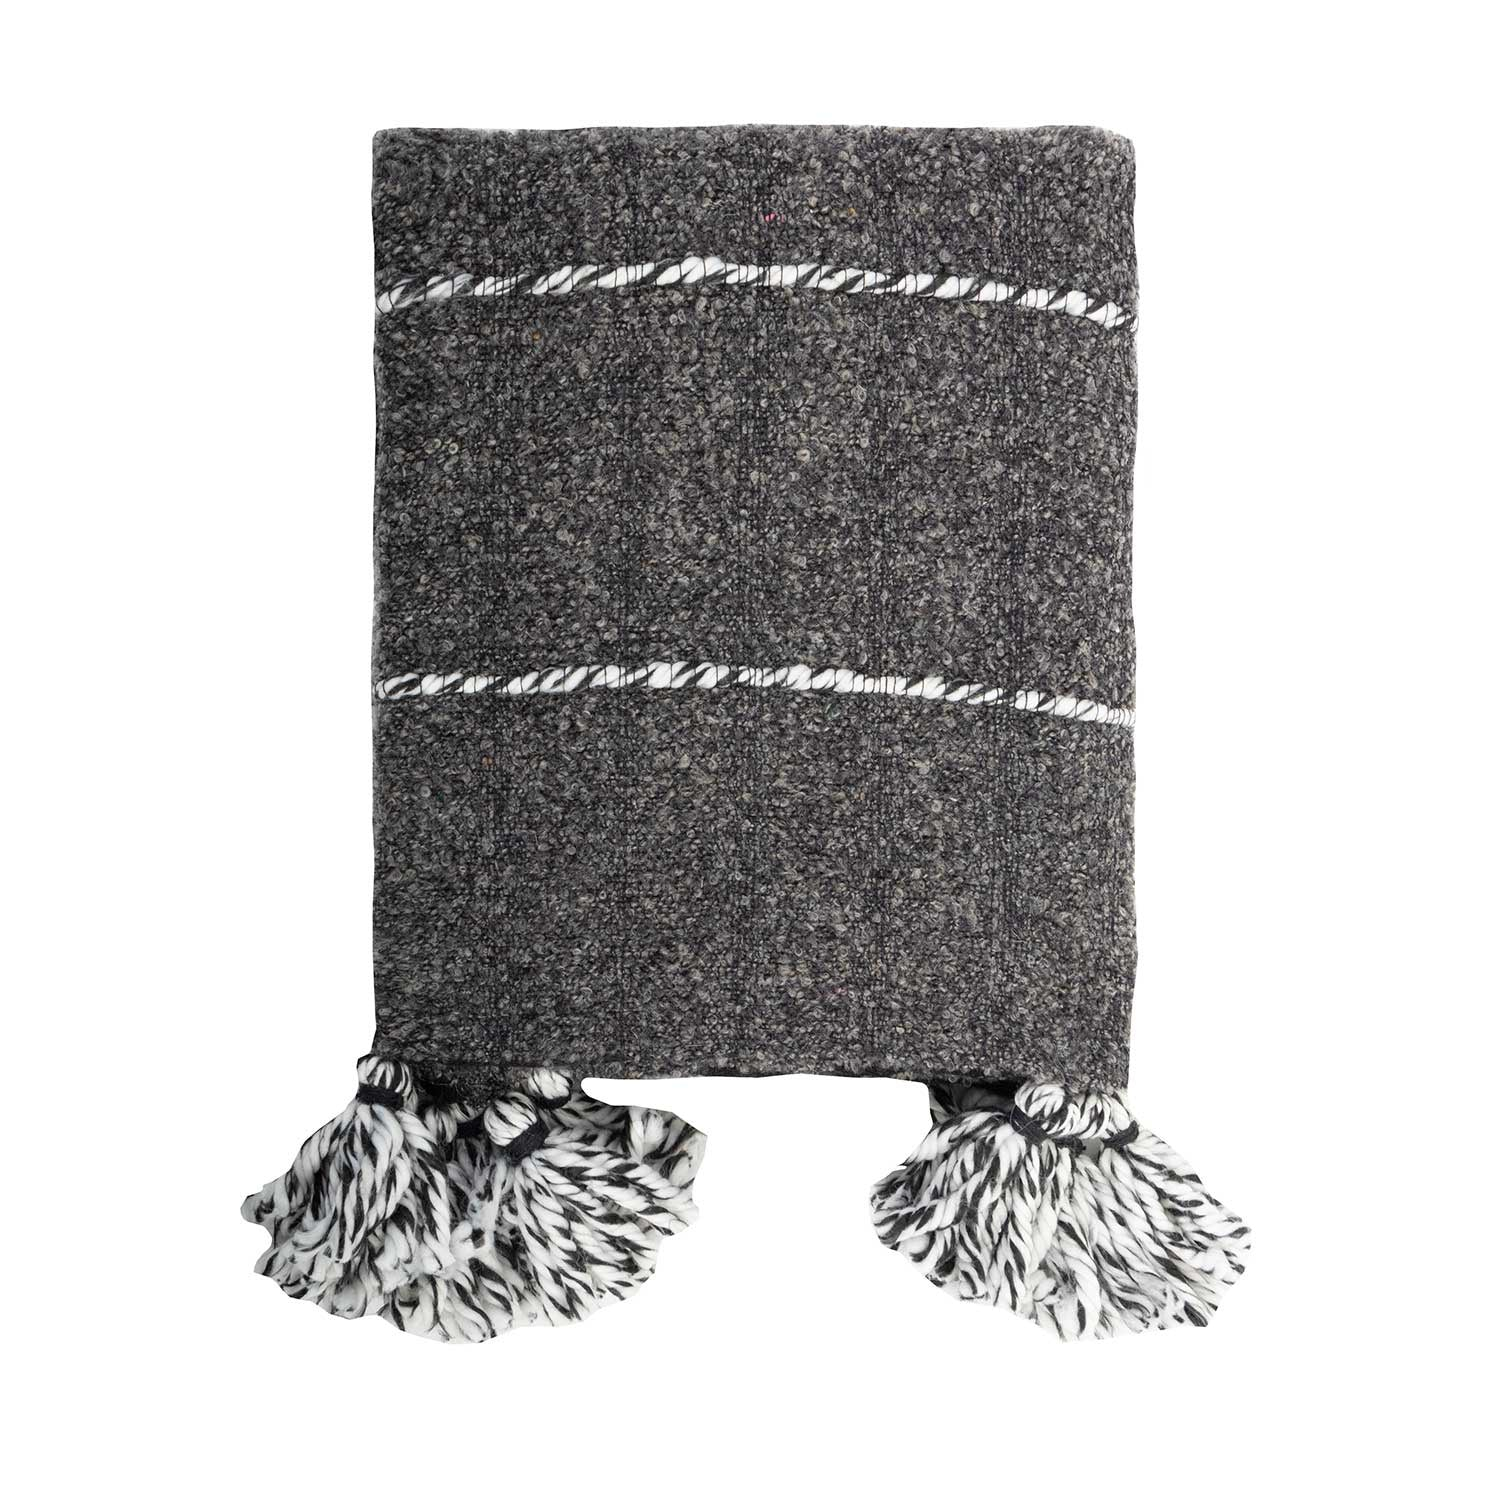 Linens & More Charcoal Tassle Wool Throw